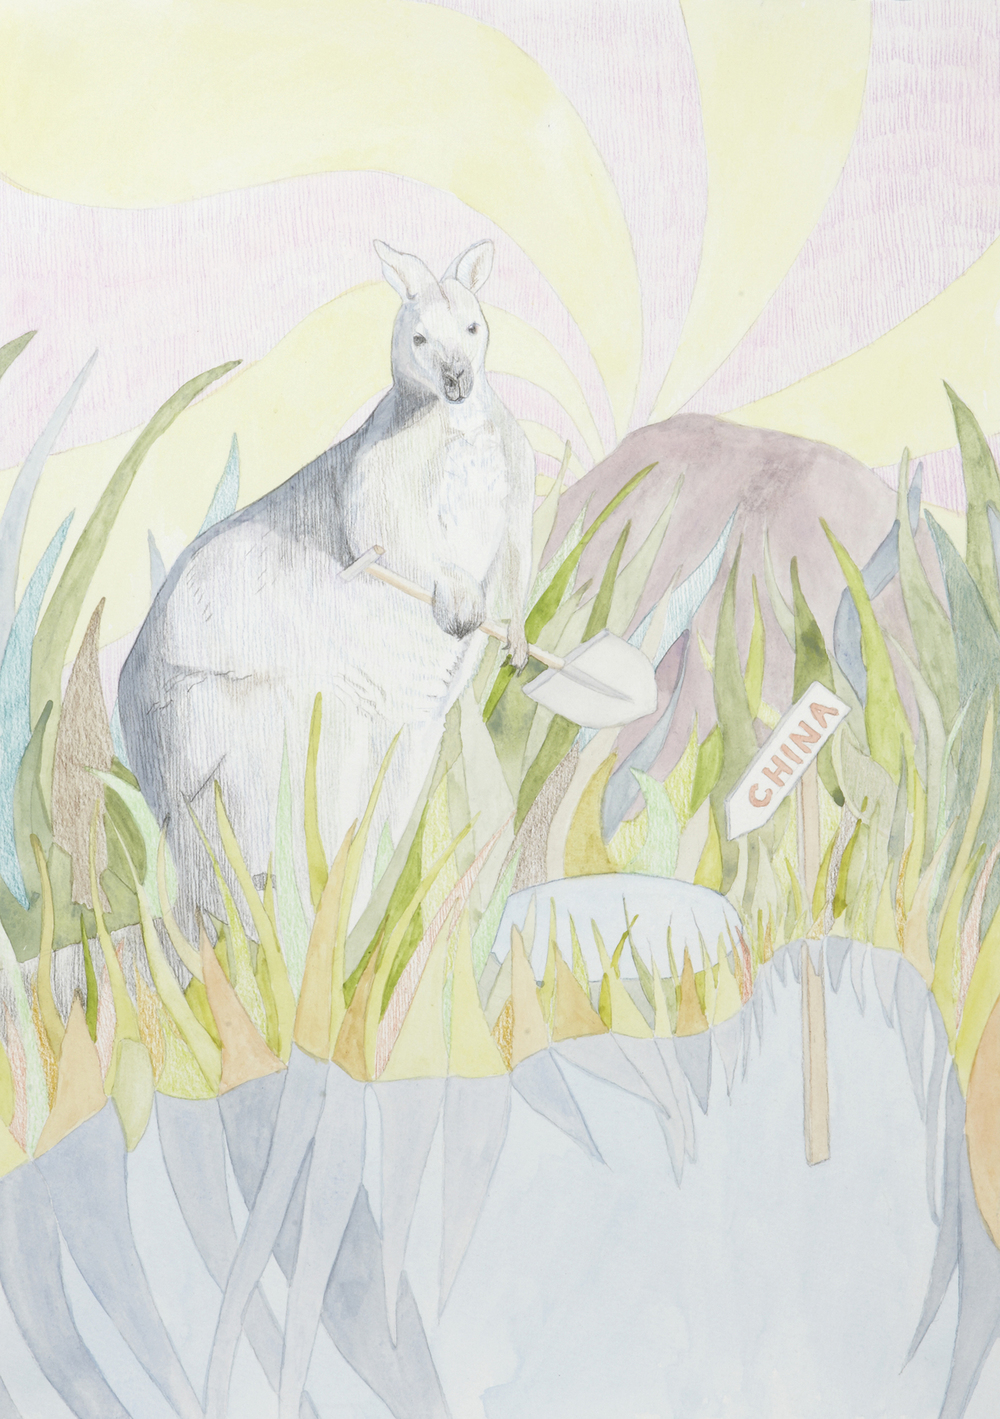 Digging for China #3, 2012, Watercolour and pencil on paper, 29.7 x 42.0 cm, Photo: Sam Scoufos